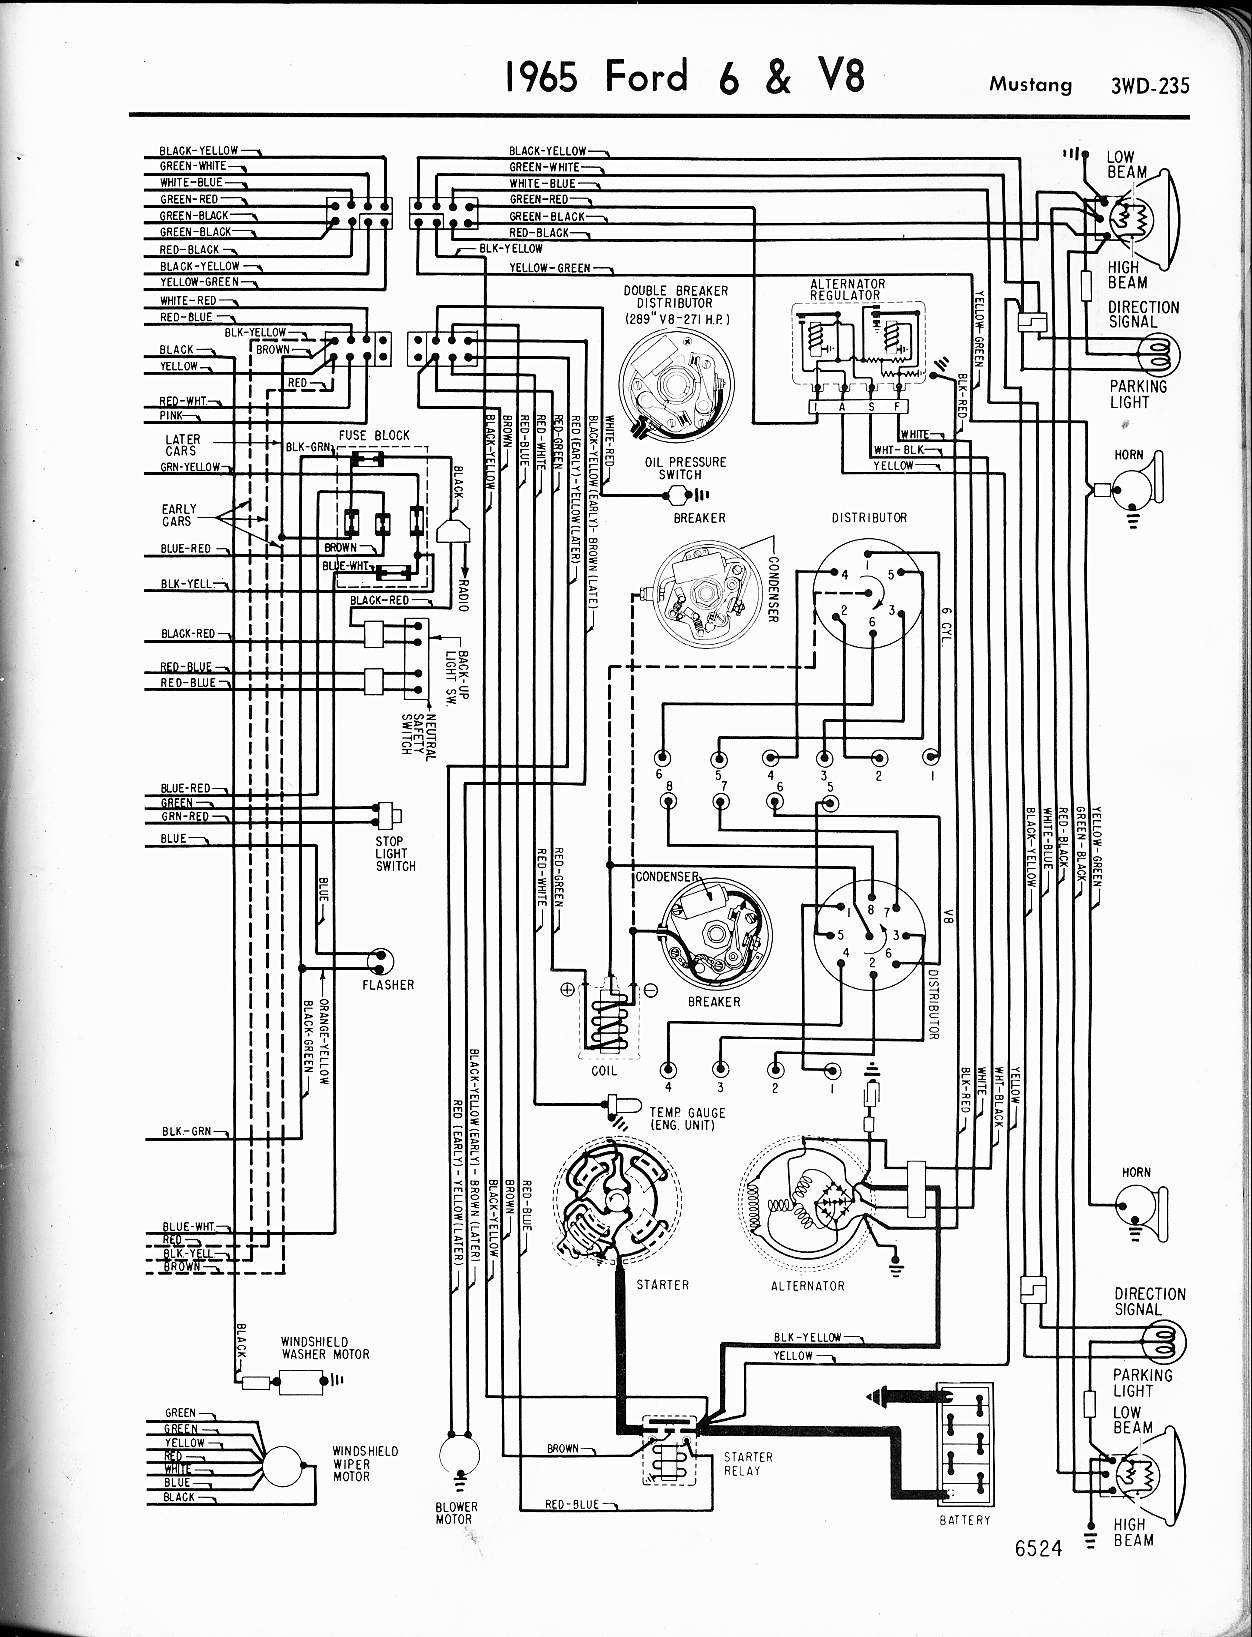 1965_mustang_wiring_2 ford diagrams 1965 mustang wiring diagram pdf at edmiracle.co